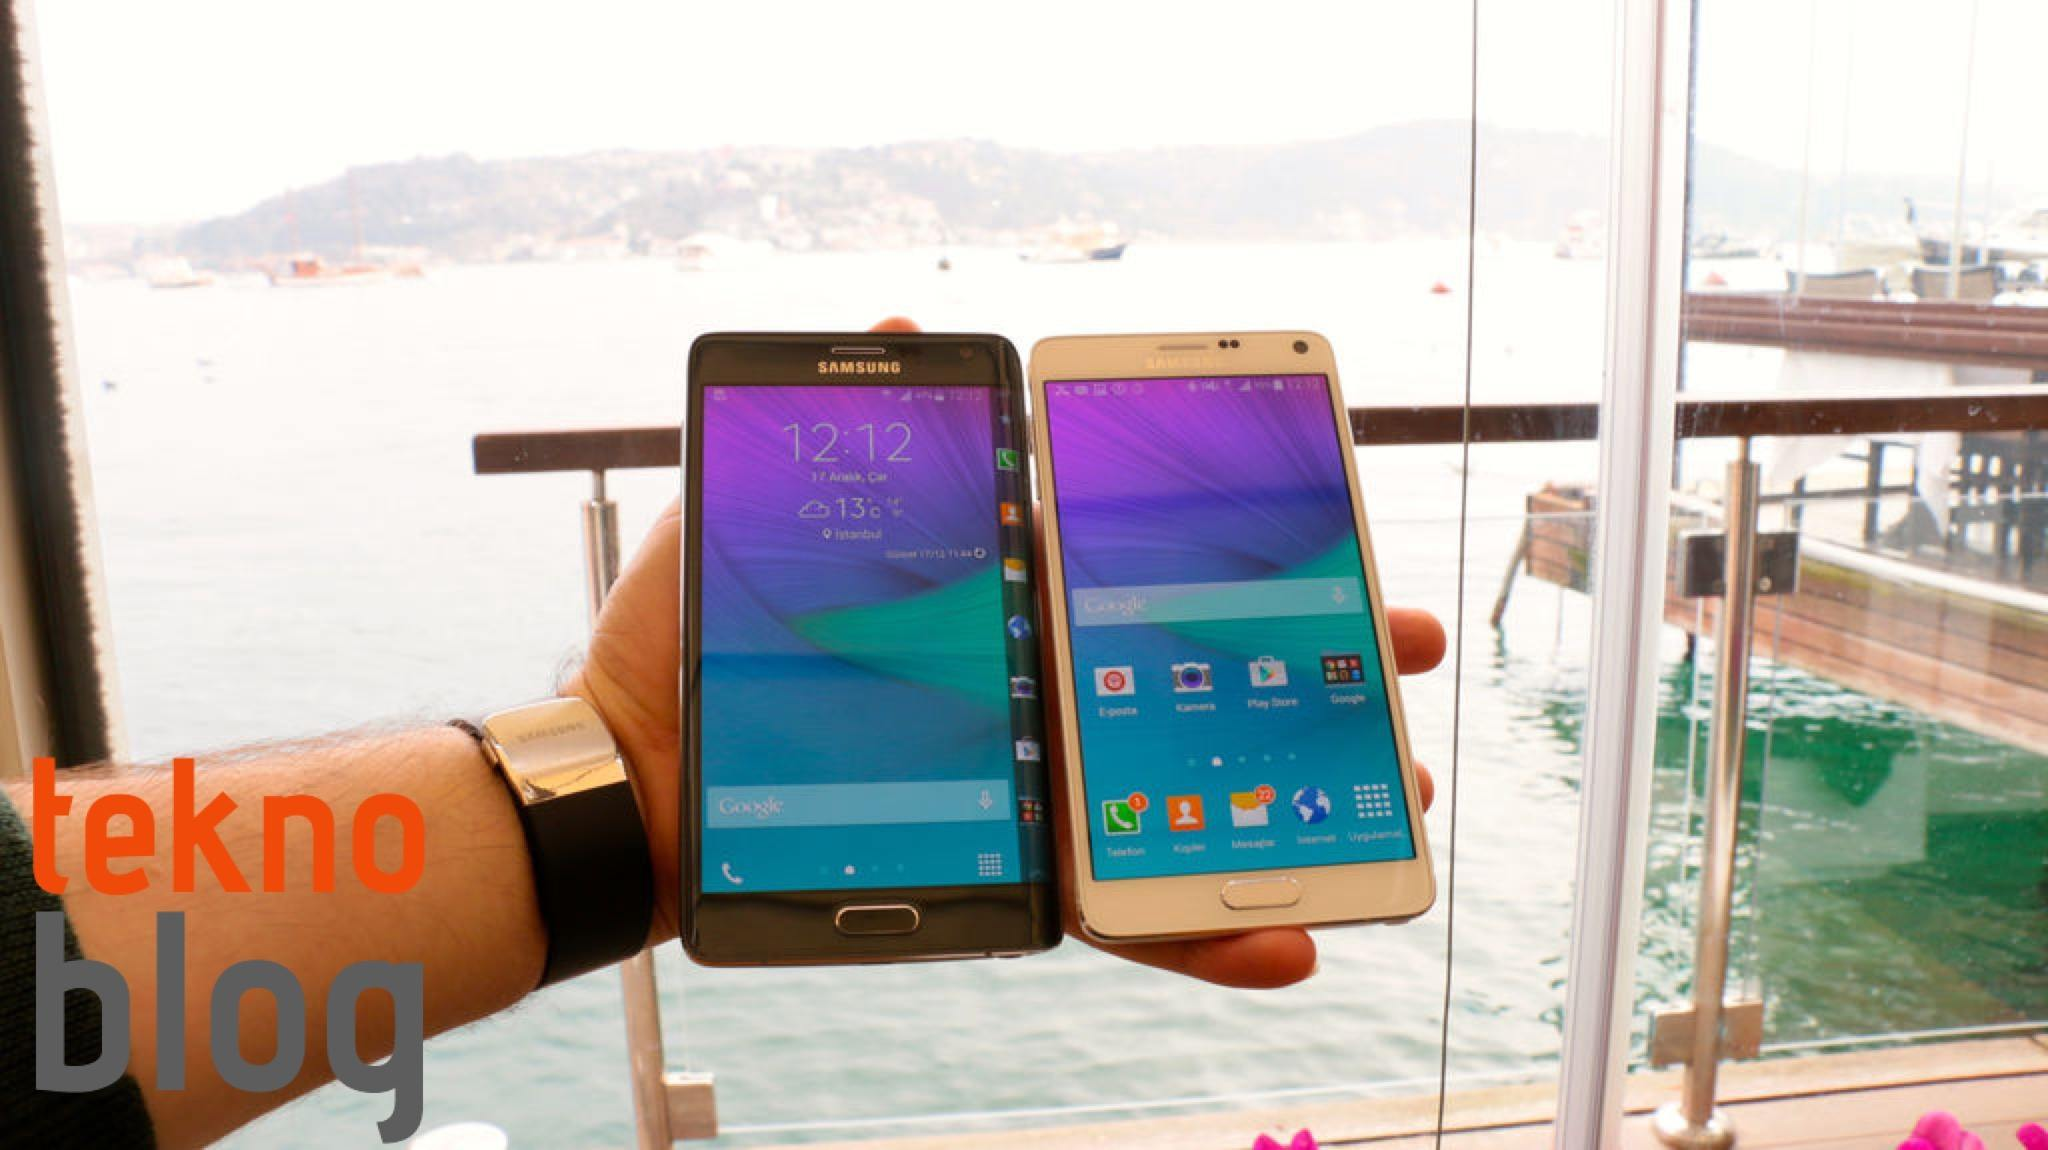 samsung-galaxy-note-edge-on-inceleme-22